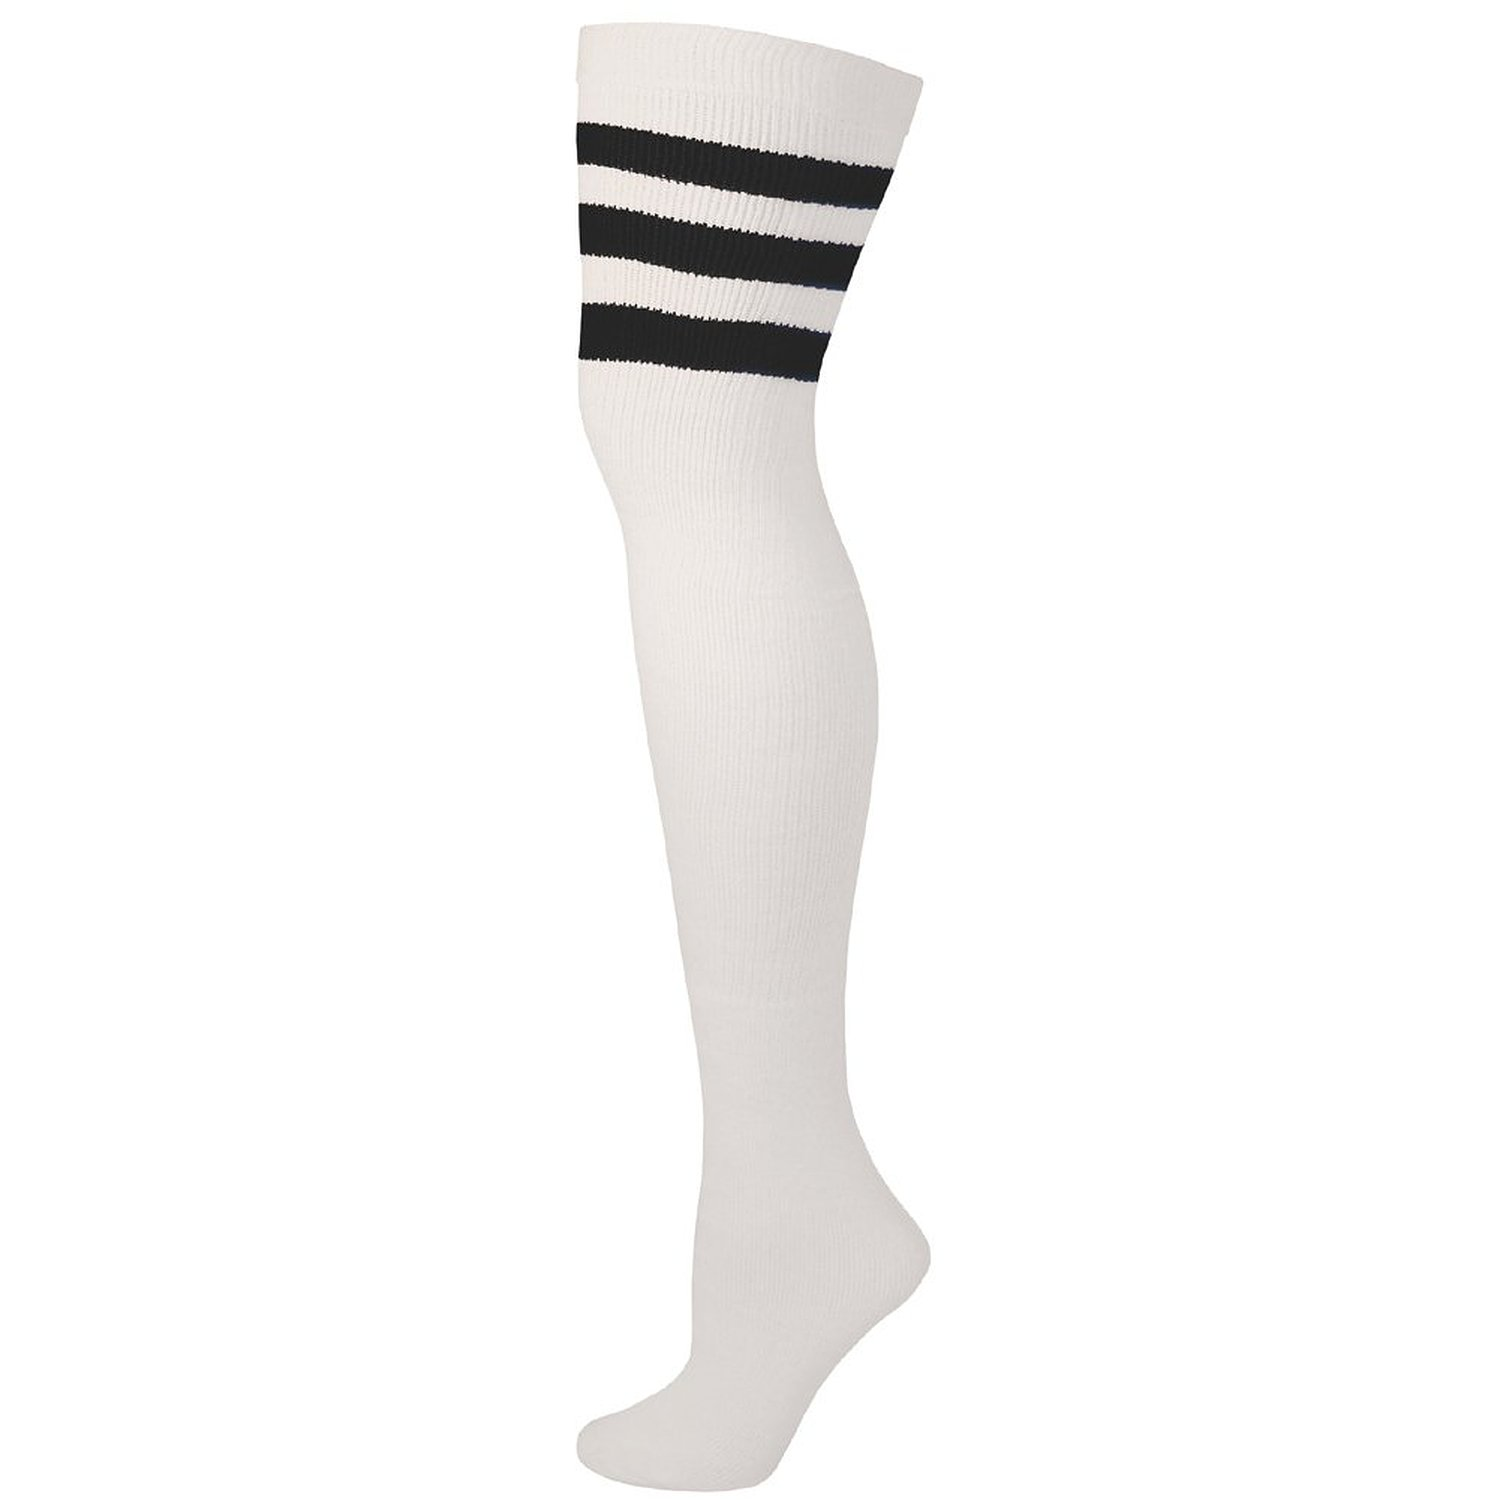 2ab45cd89fe Amazon.com  AJs Retro Thigh High Tube Socks - White